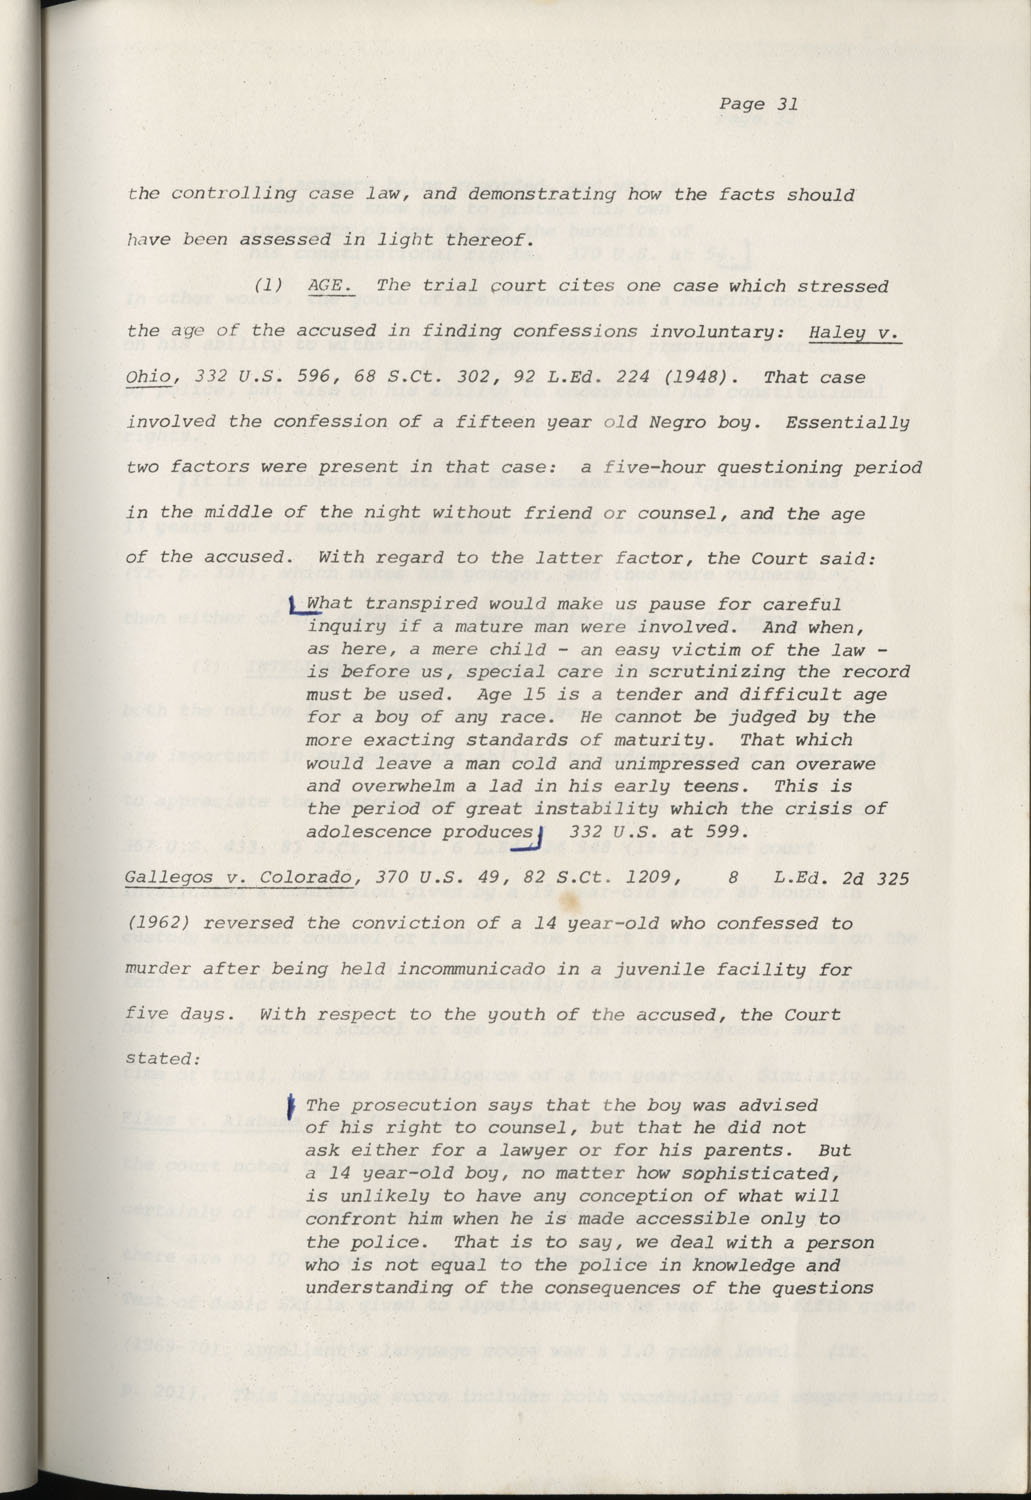 State of South Carolina vs. Robert Lee Smith, Brief of Appellant, Page 31